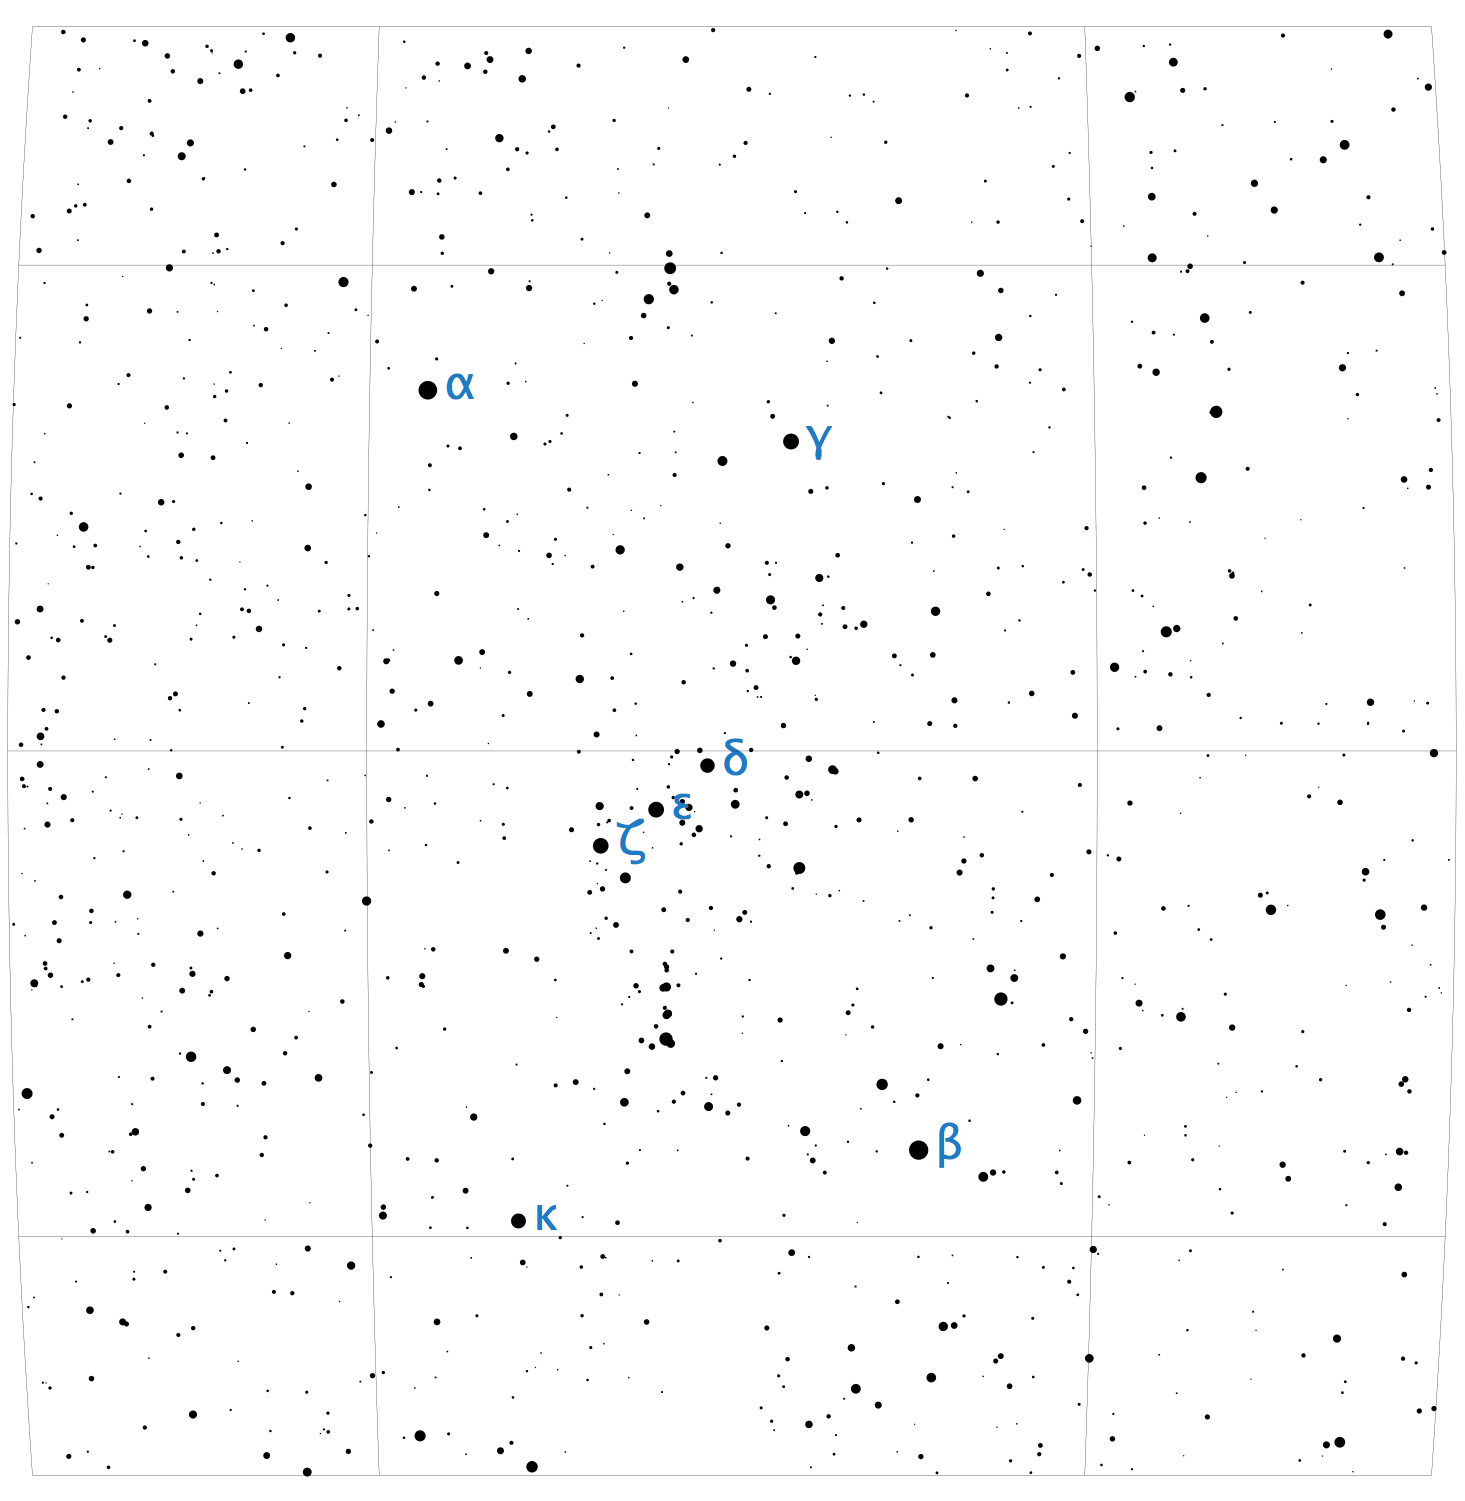 Star Chart showing Orion